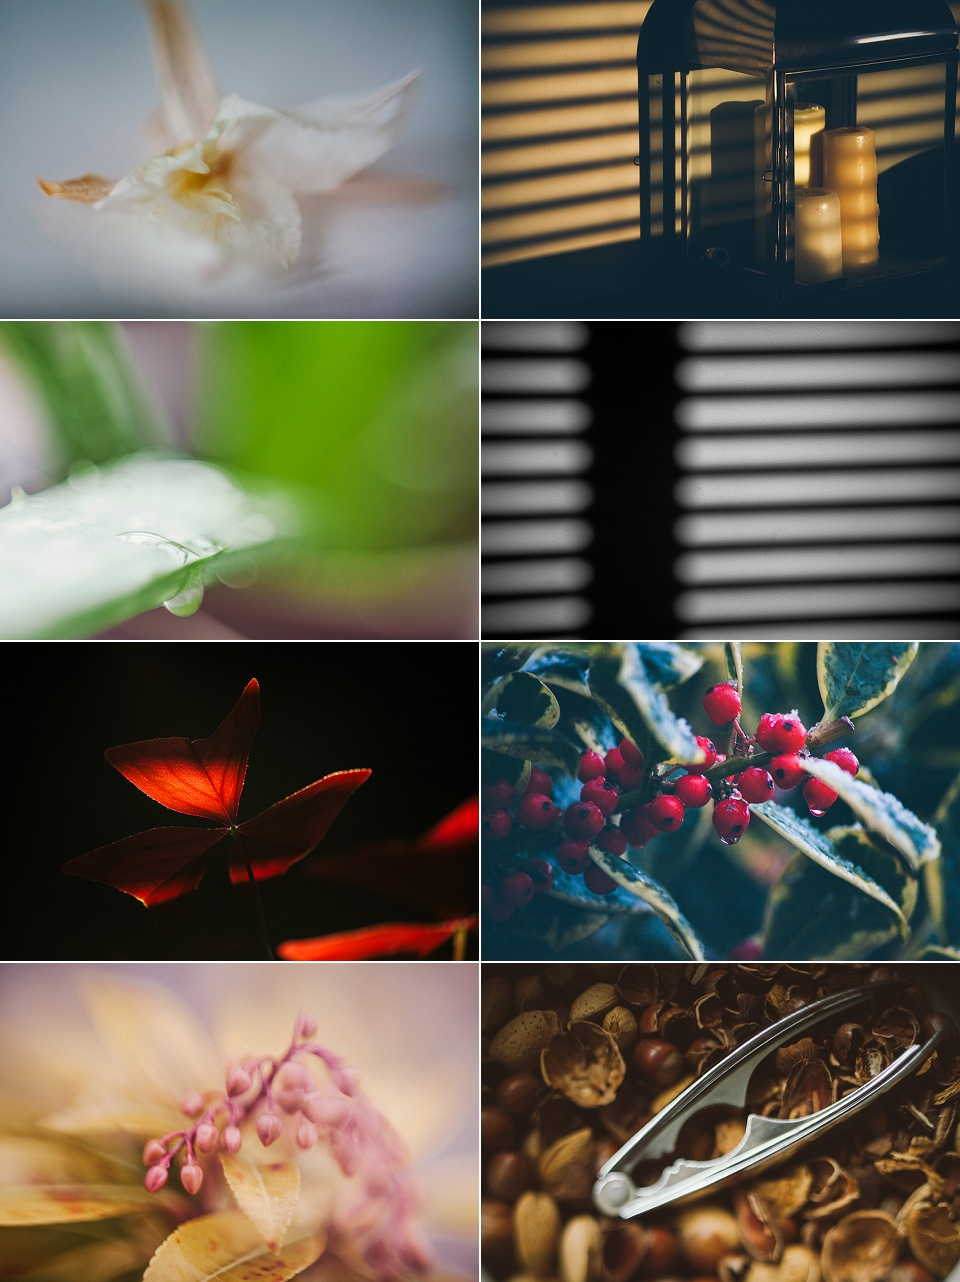 52 Week Photo Challenge - At Home